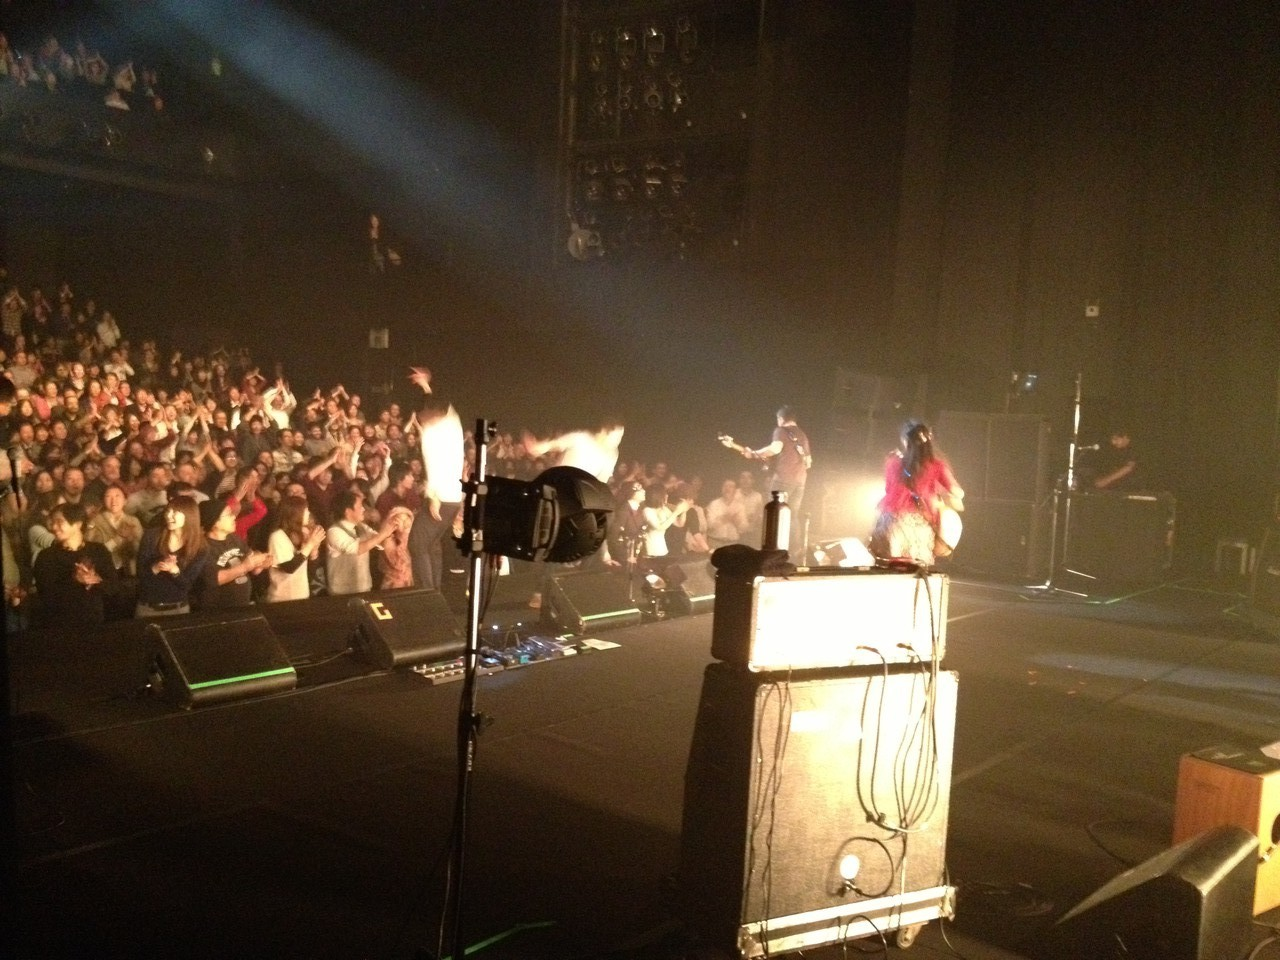 Another very warm crowd! — at Osaka.